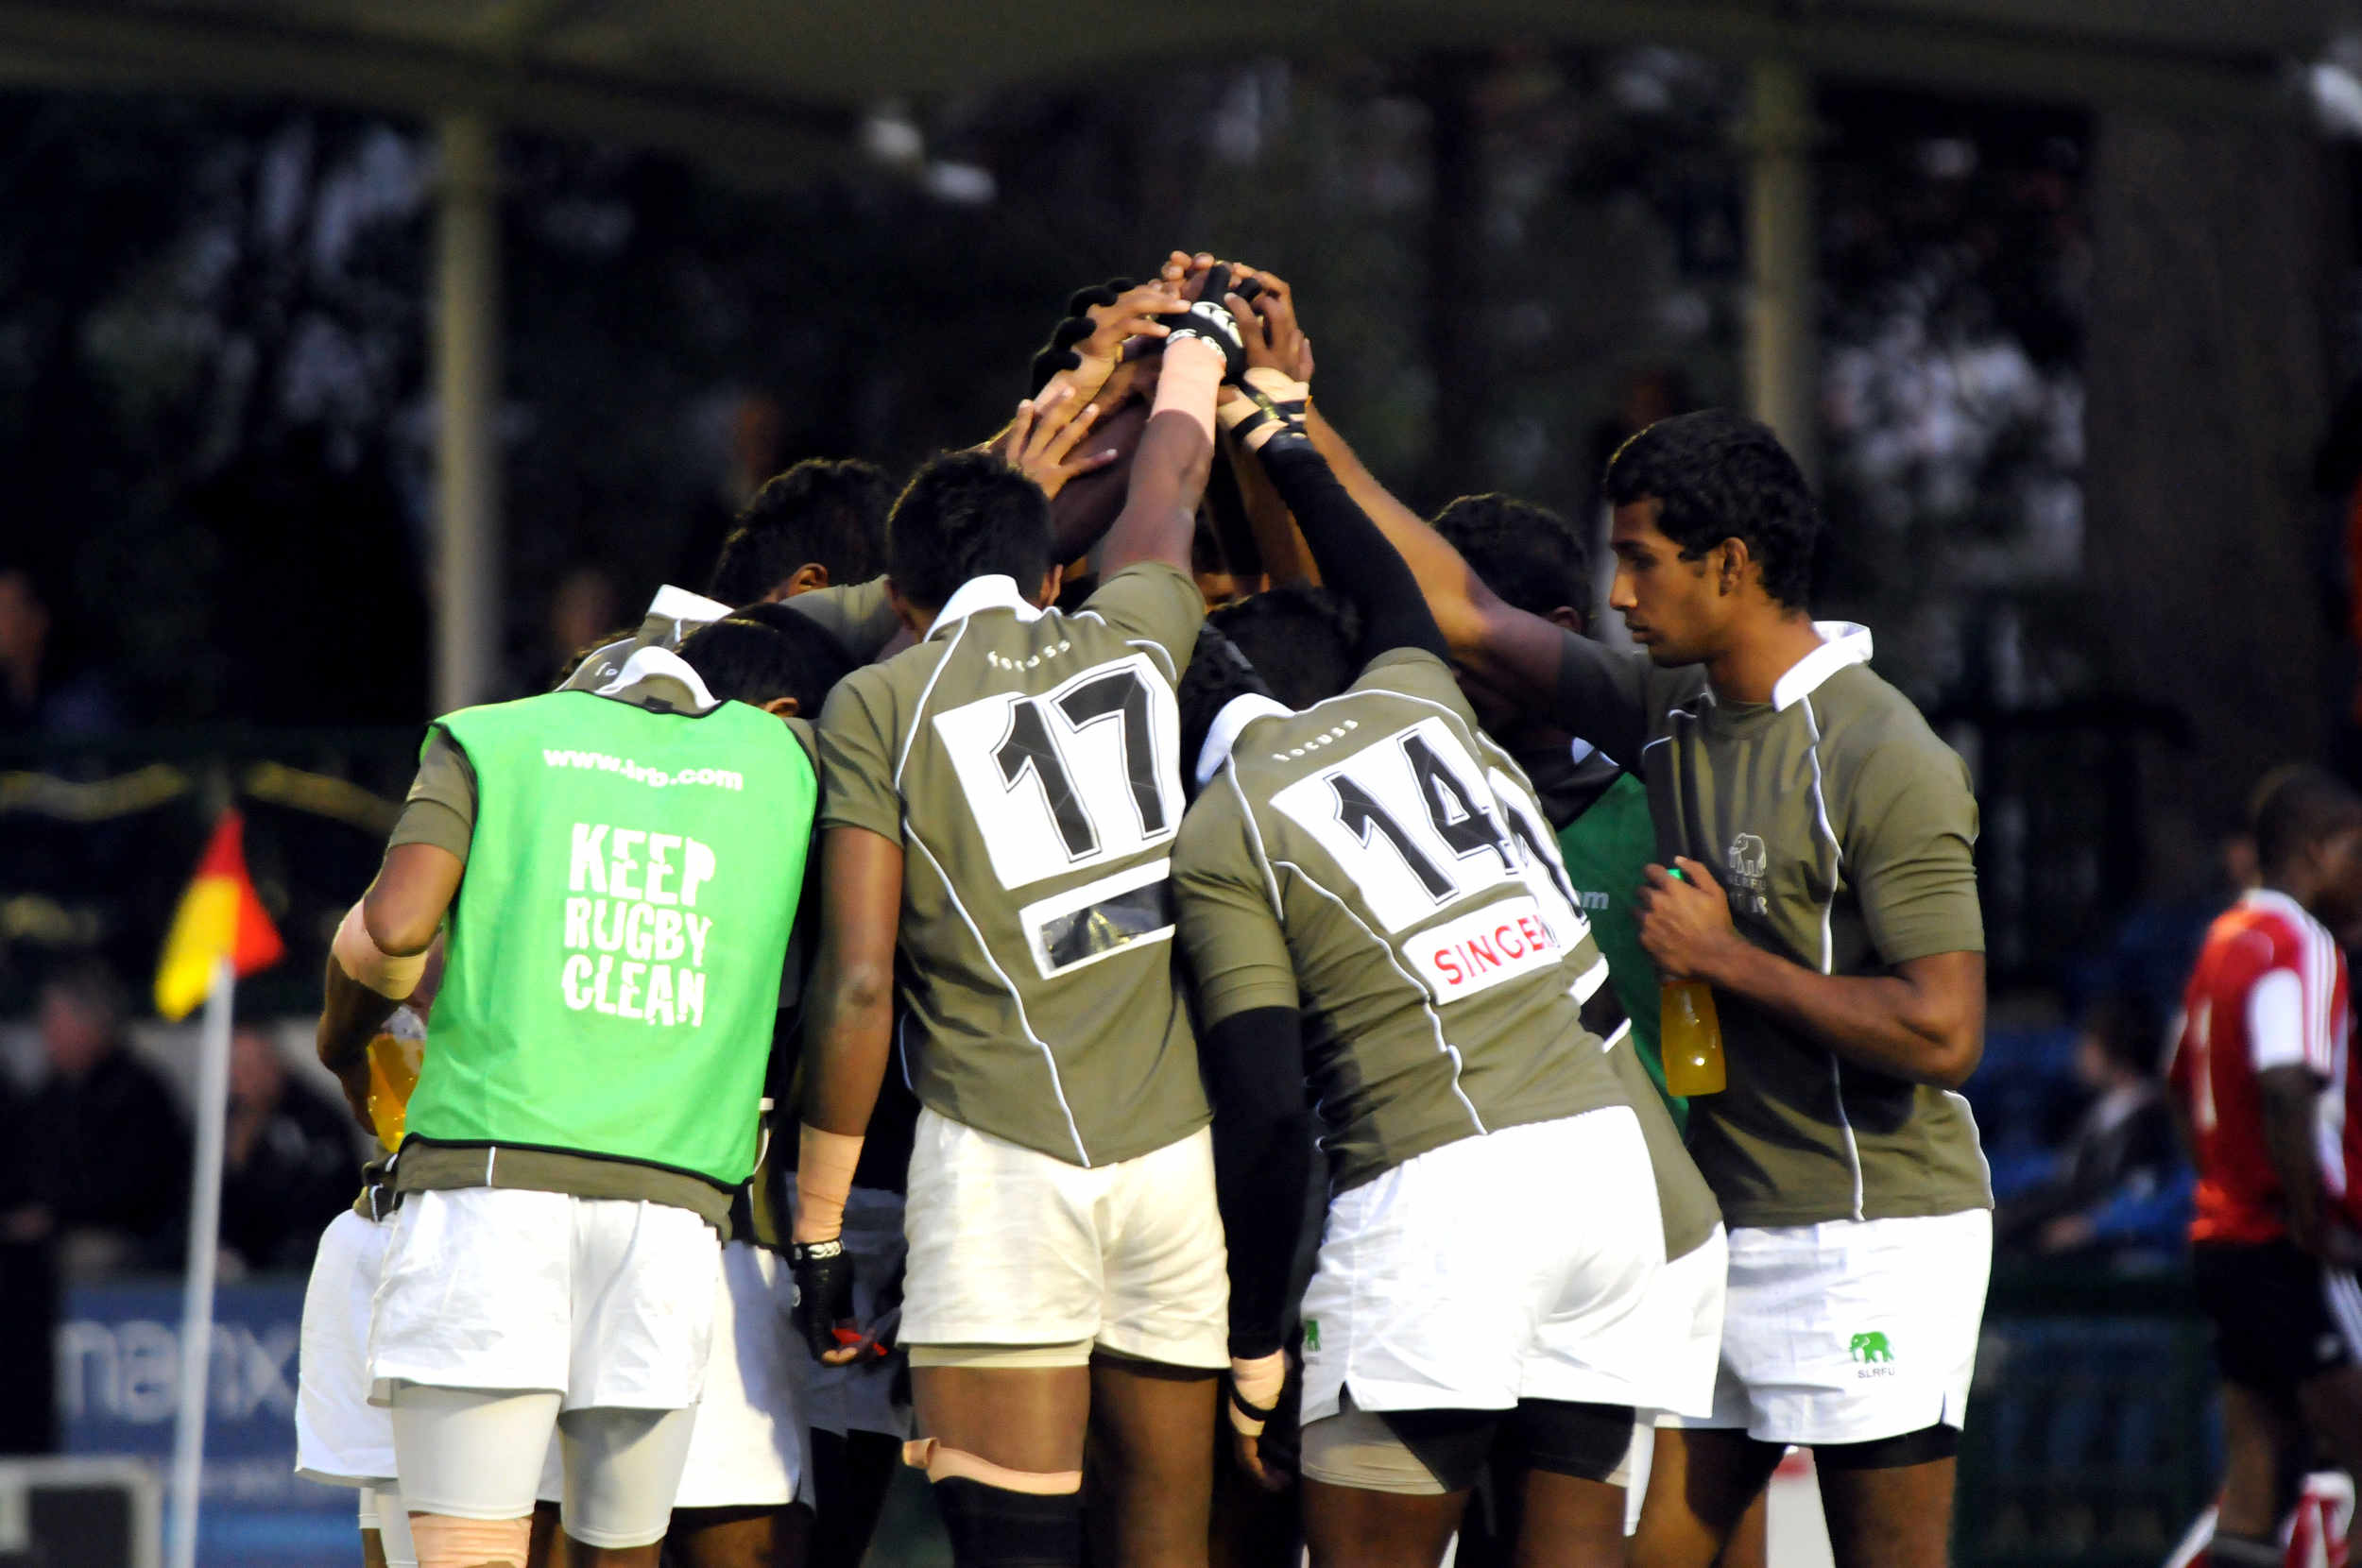 The Sri Lankan Rugby Sevens team prepare to play Trinidad and Tobago in the Grand Final Bowl Match at the 2011 Commonwealth Youth Games